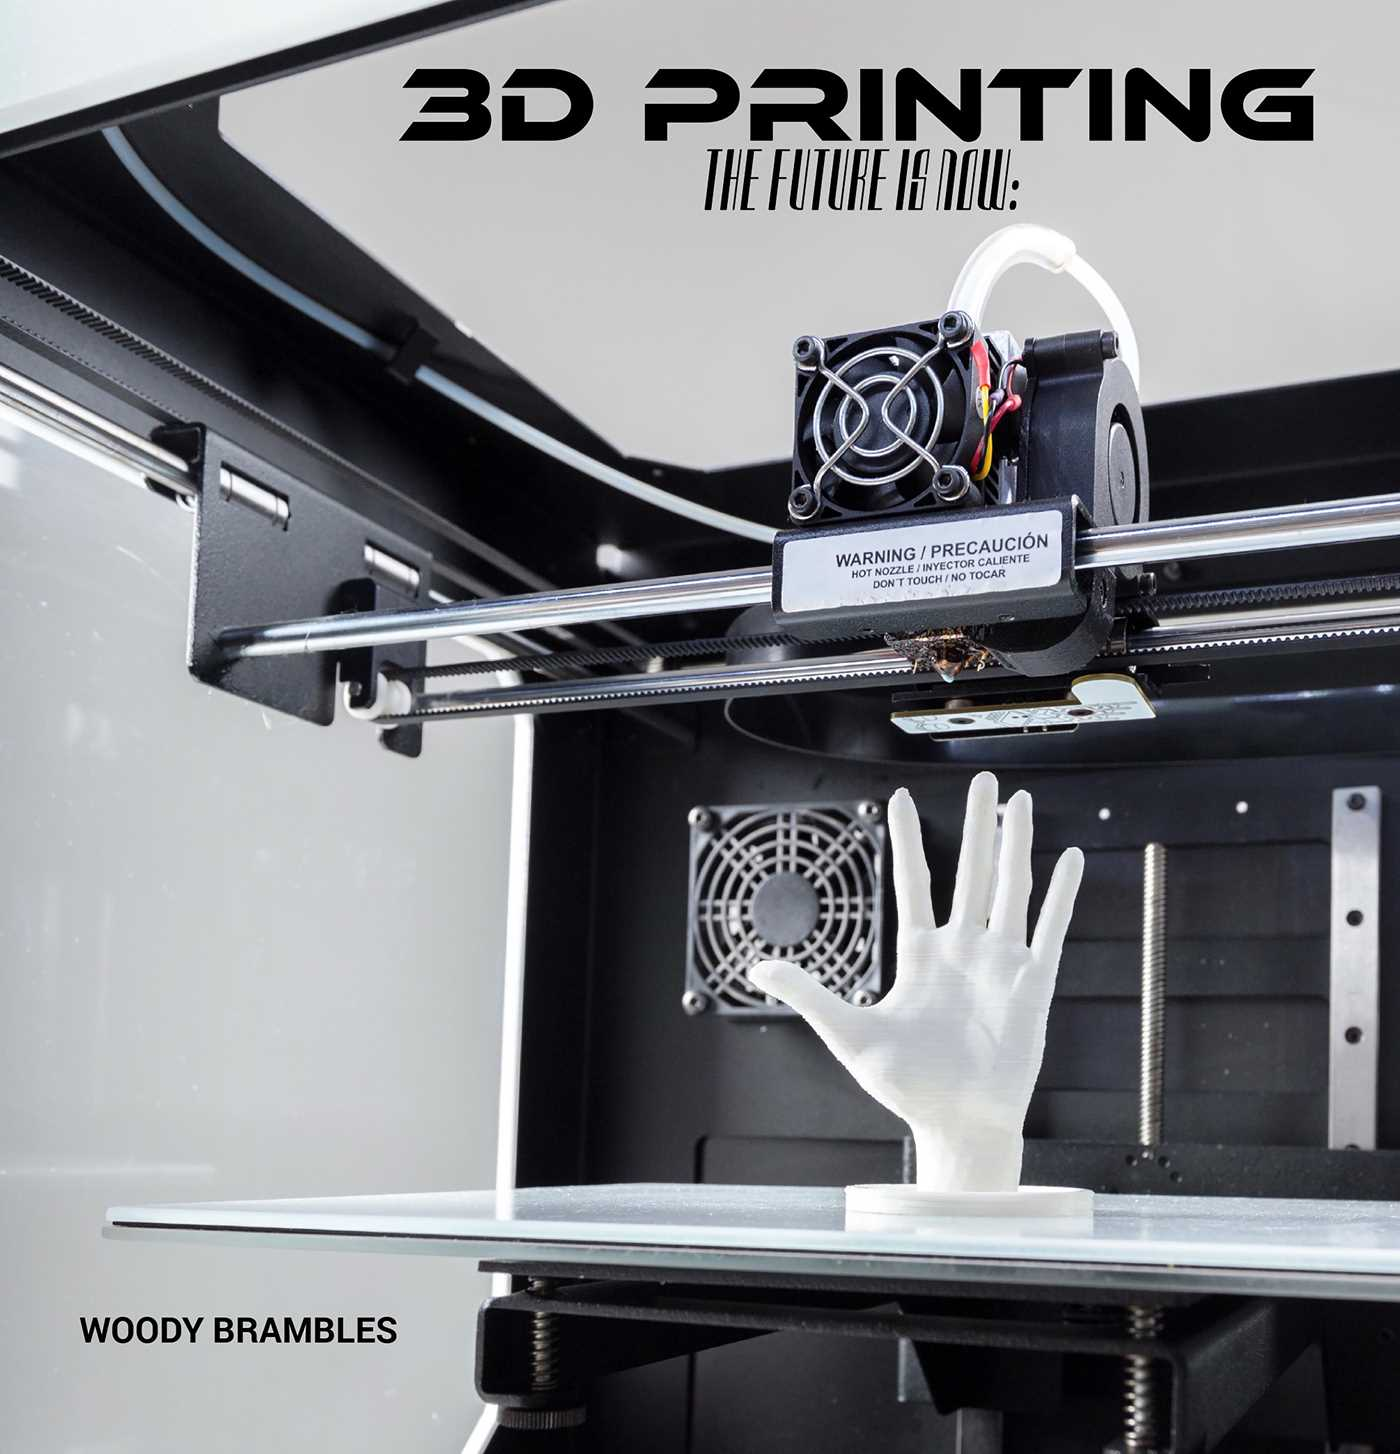 3D Printing: The Future is Now